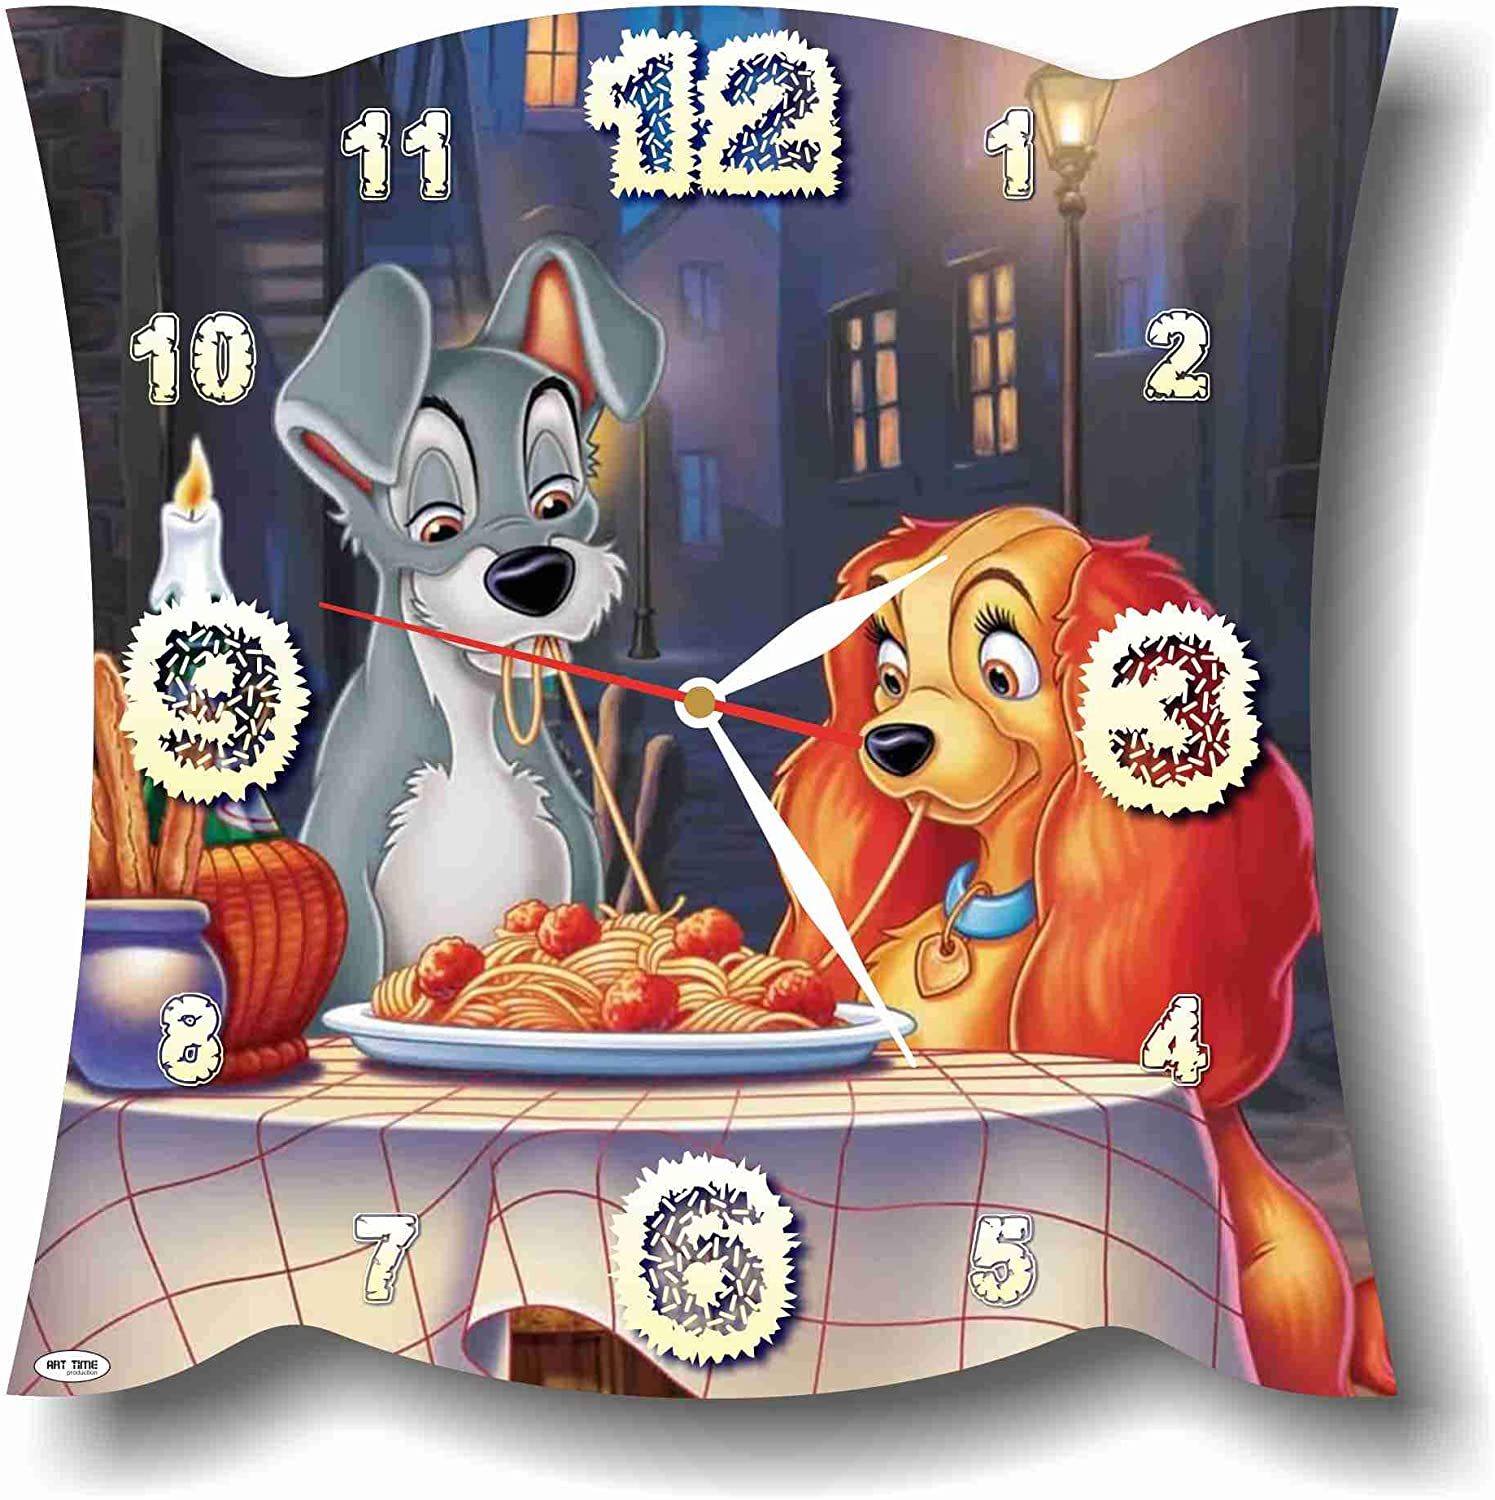 MAGIC WALL CLOCK FOR DISNEY FANS Lady and The Tramp 11'' Handmade Made of Acrylic Glass - Get Unique décor for Home or Office – Best Gift Ideas for Kids, Friends, Parents and Your Soul Mates